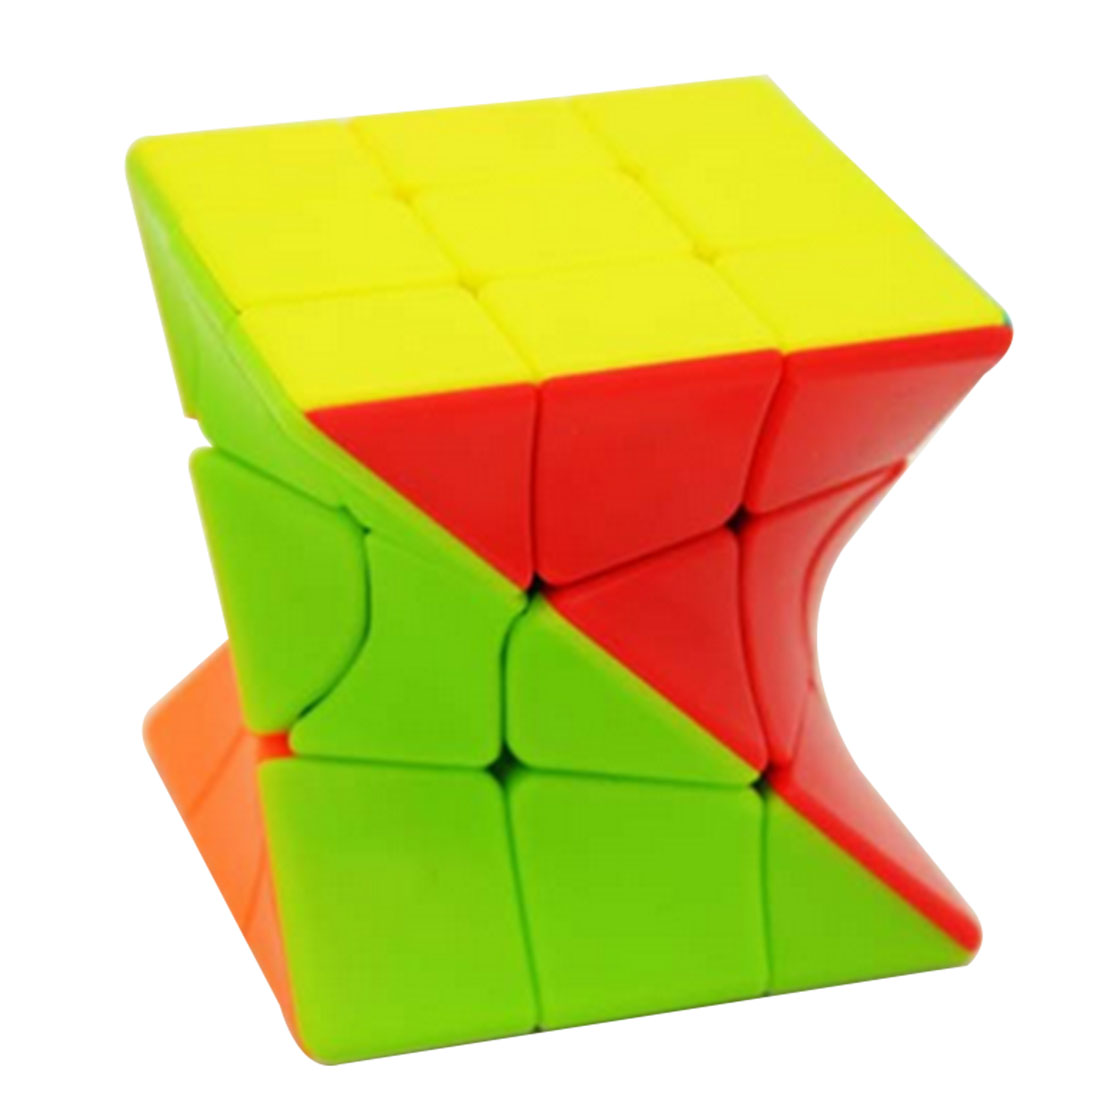 Fangge 3x3 Torsion Magic Cube Coloful Twisted Cube Puzzle Toy for Challange moyu moyan the devils eye ii cube puzzle magic cube brain teaser educational toy